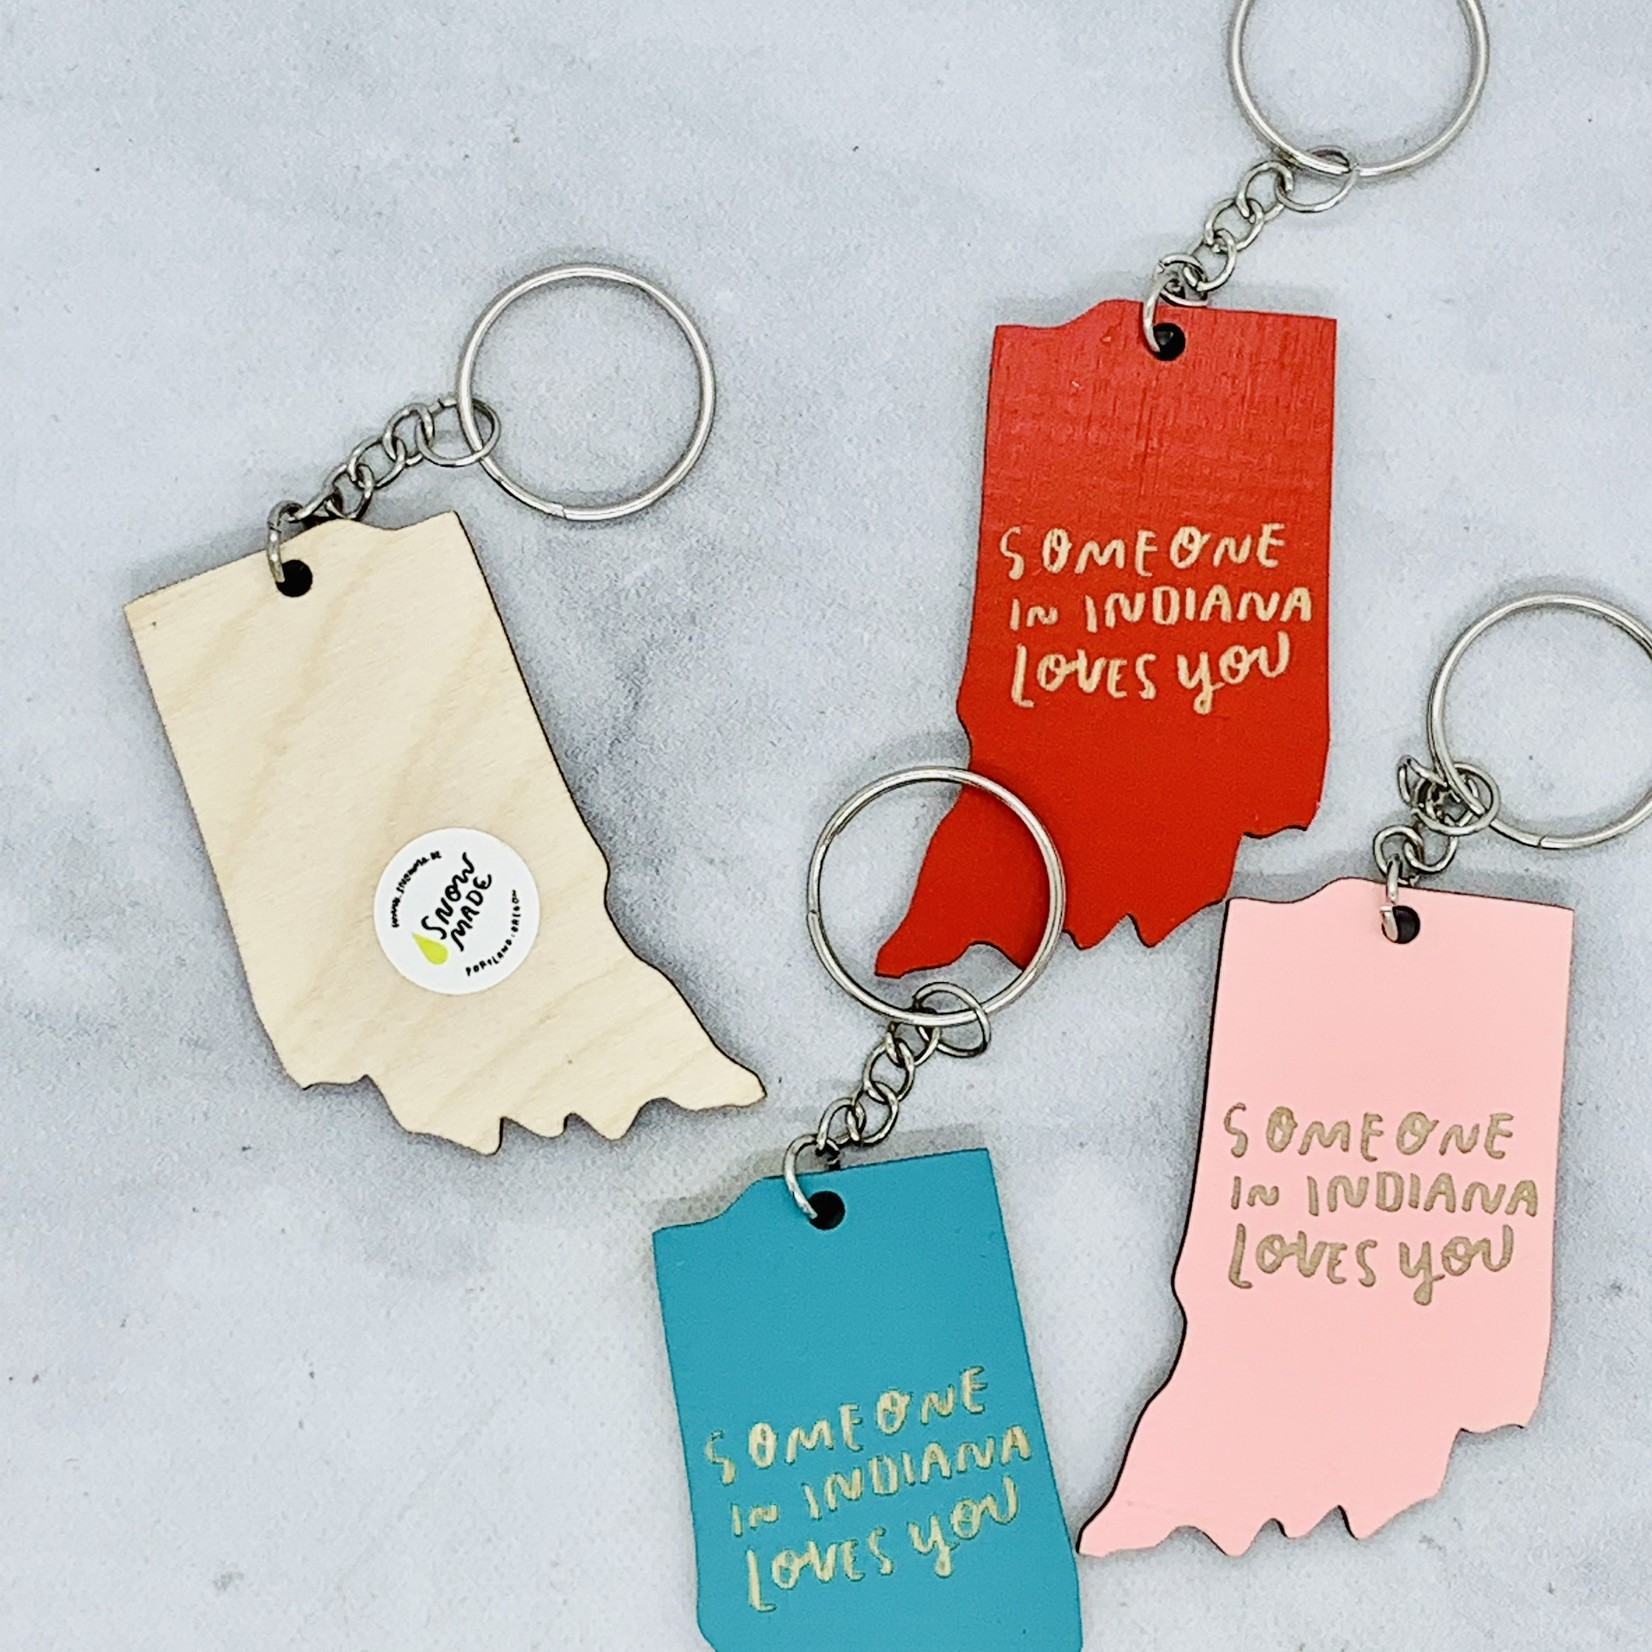 Someone In Indiana Loves You Keychain